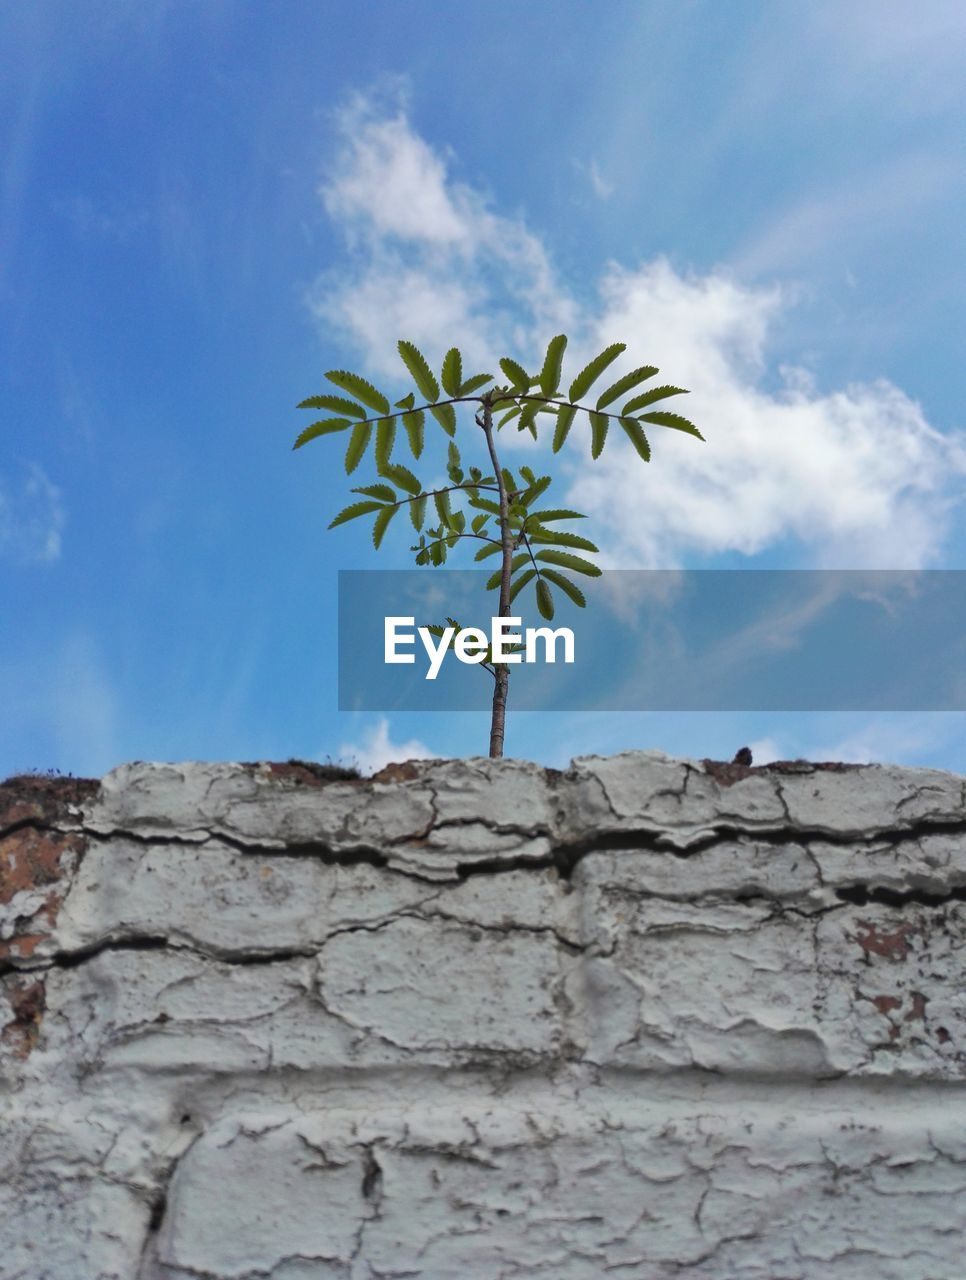 wall, plant, wall - building feature, nature, cloud - sky, growth, architecture, built structure, low angle view, sky, stone wall, no people, day, beauty in nature, outdoors, leaf, freshness, plant part, close-up, solid, brick, concrete